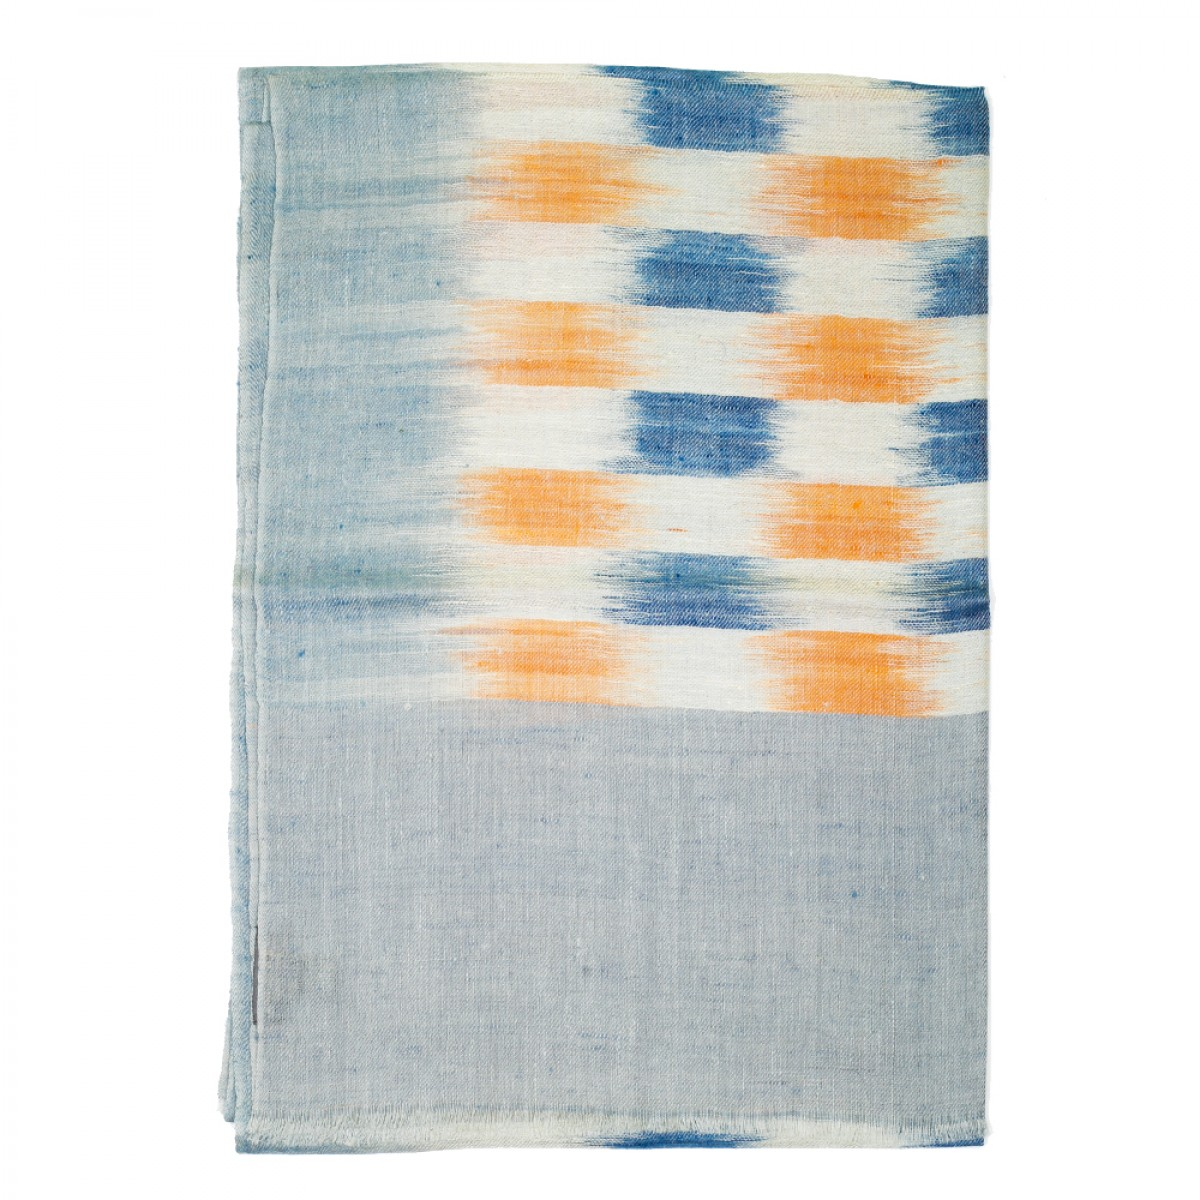 Unisex Ikat Cashmere Pashmina Scarf - Light Grey and Yellow